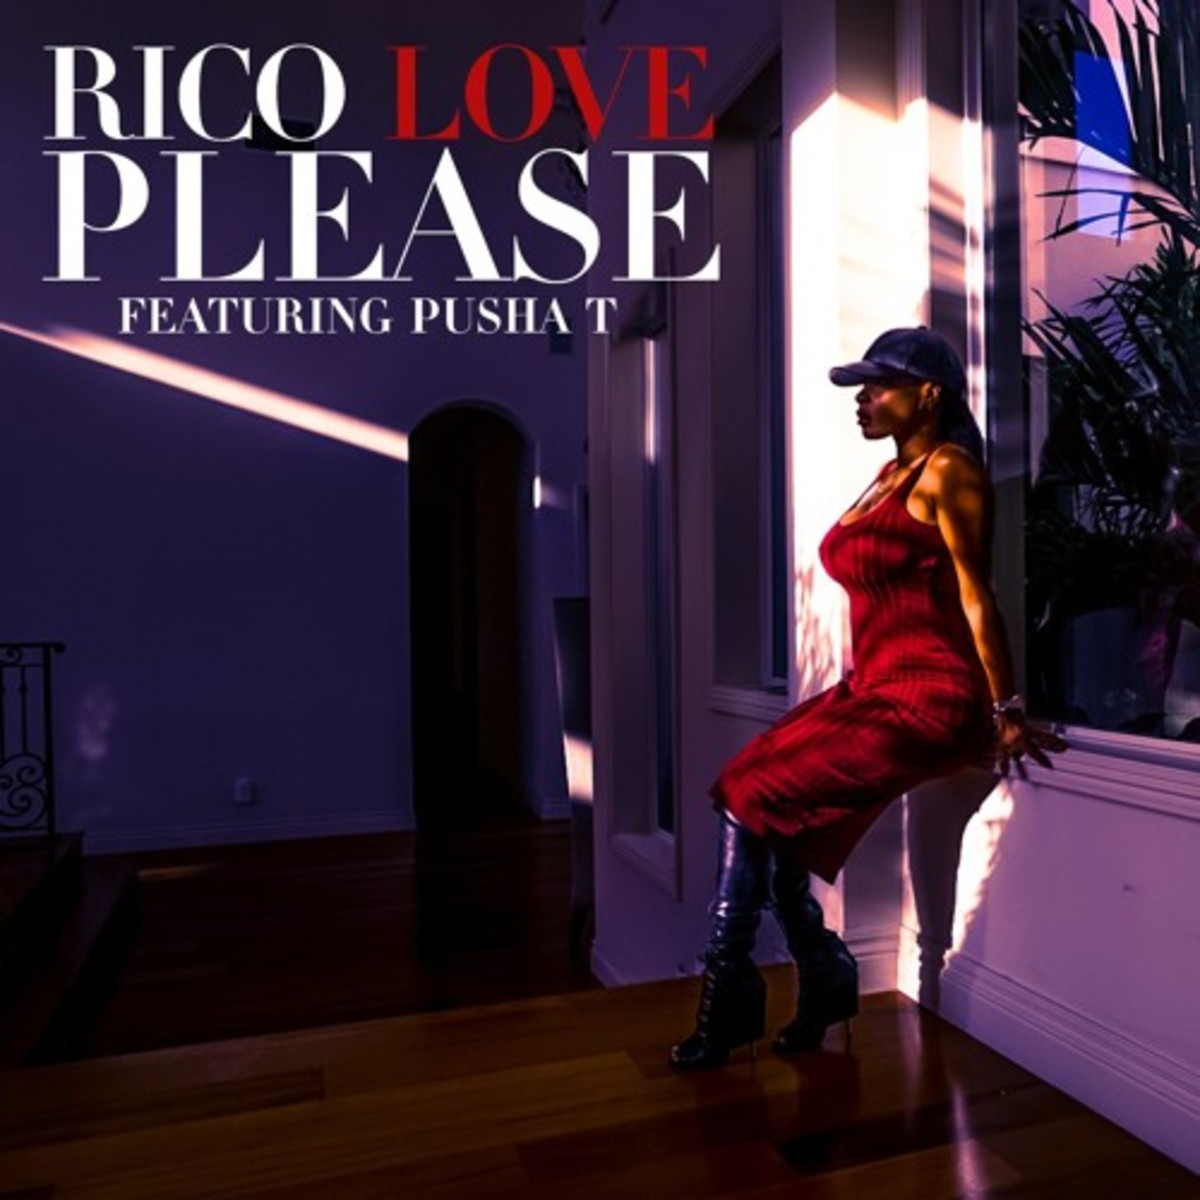 rico-love-please.jpg